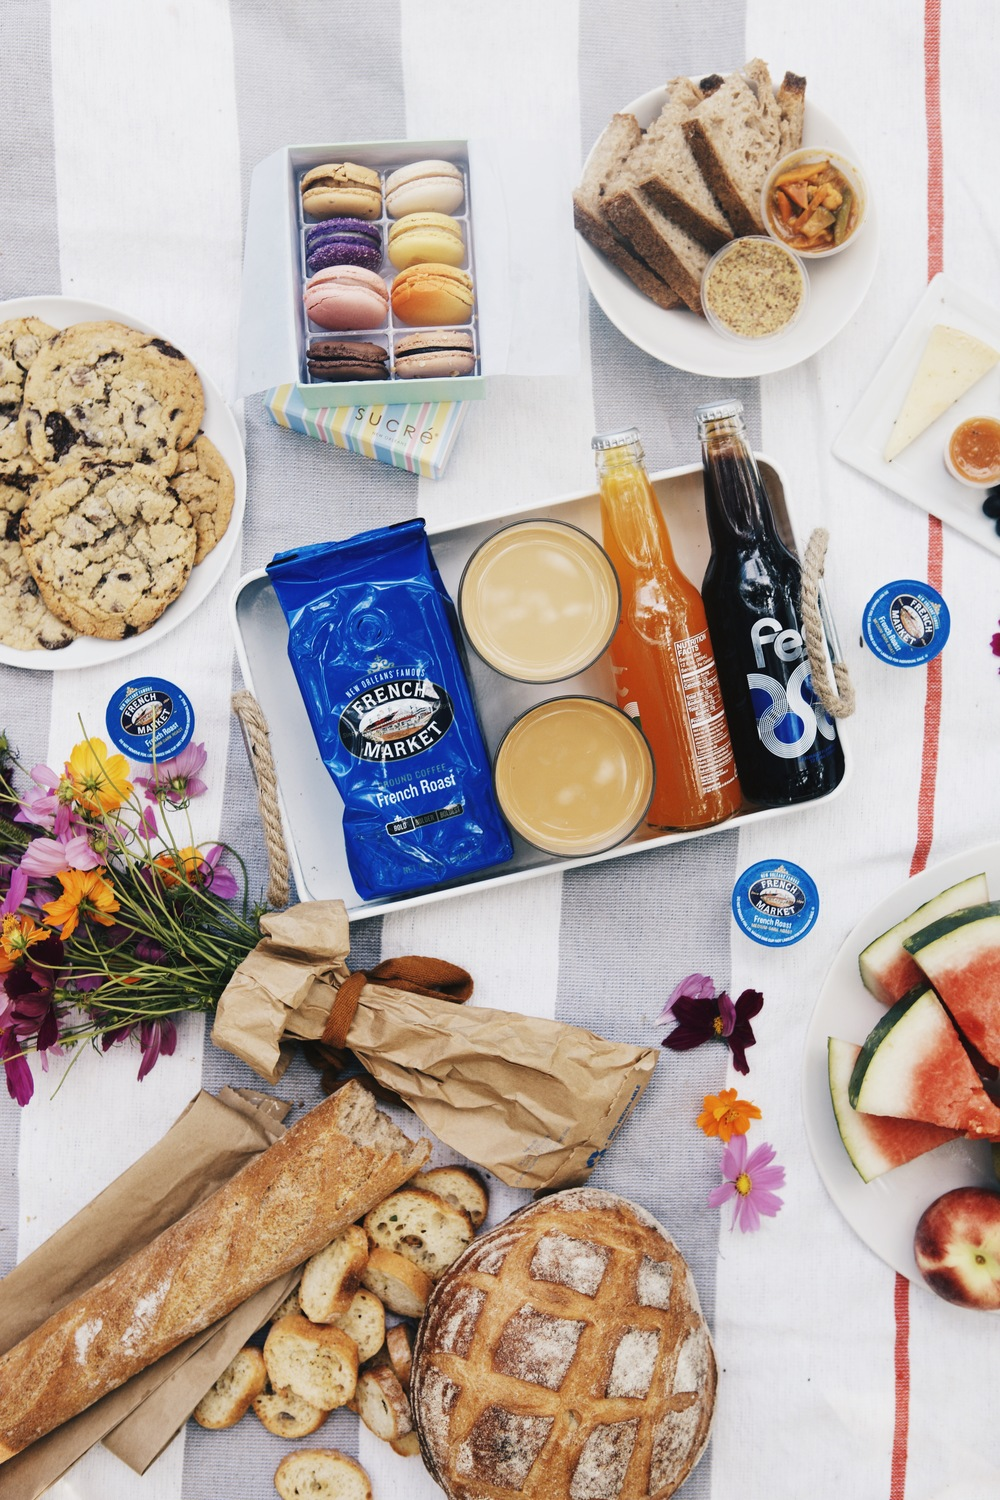 the quintessential City Park picnic: meats and cheeses from St. James Cheese Company, an overflow of freshly-baked breads from La Boulangerie, colorful macarons from Sucre and iced French Market Coffee French Roast.